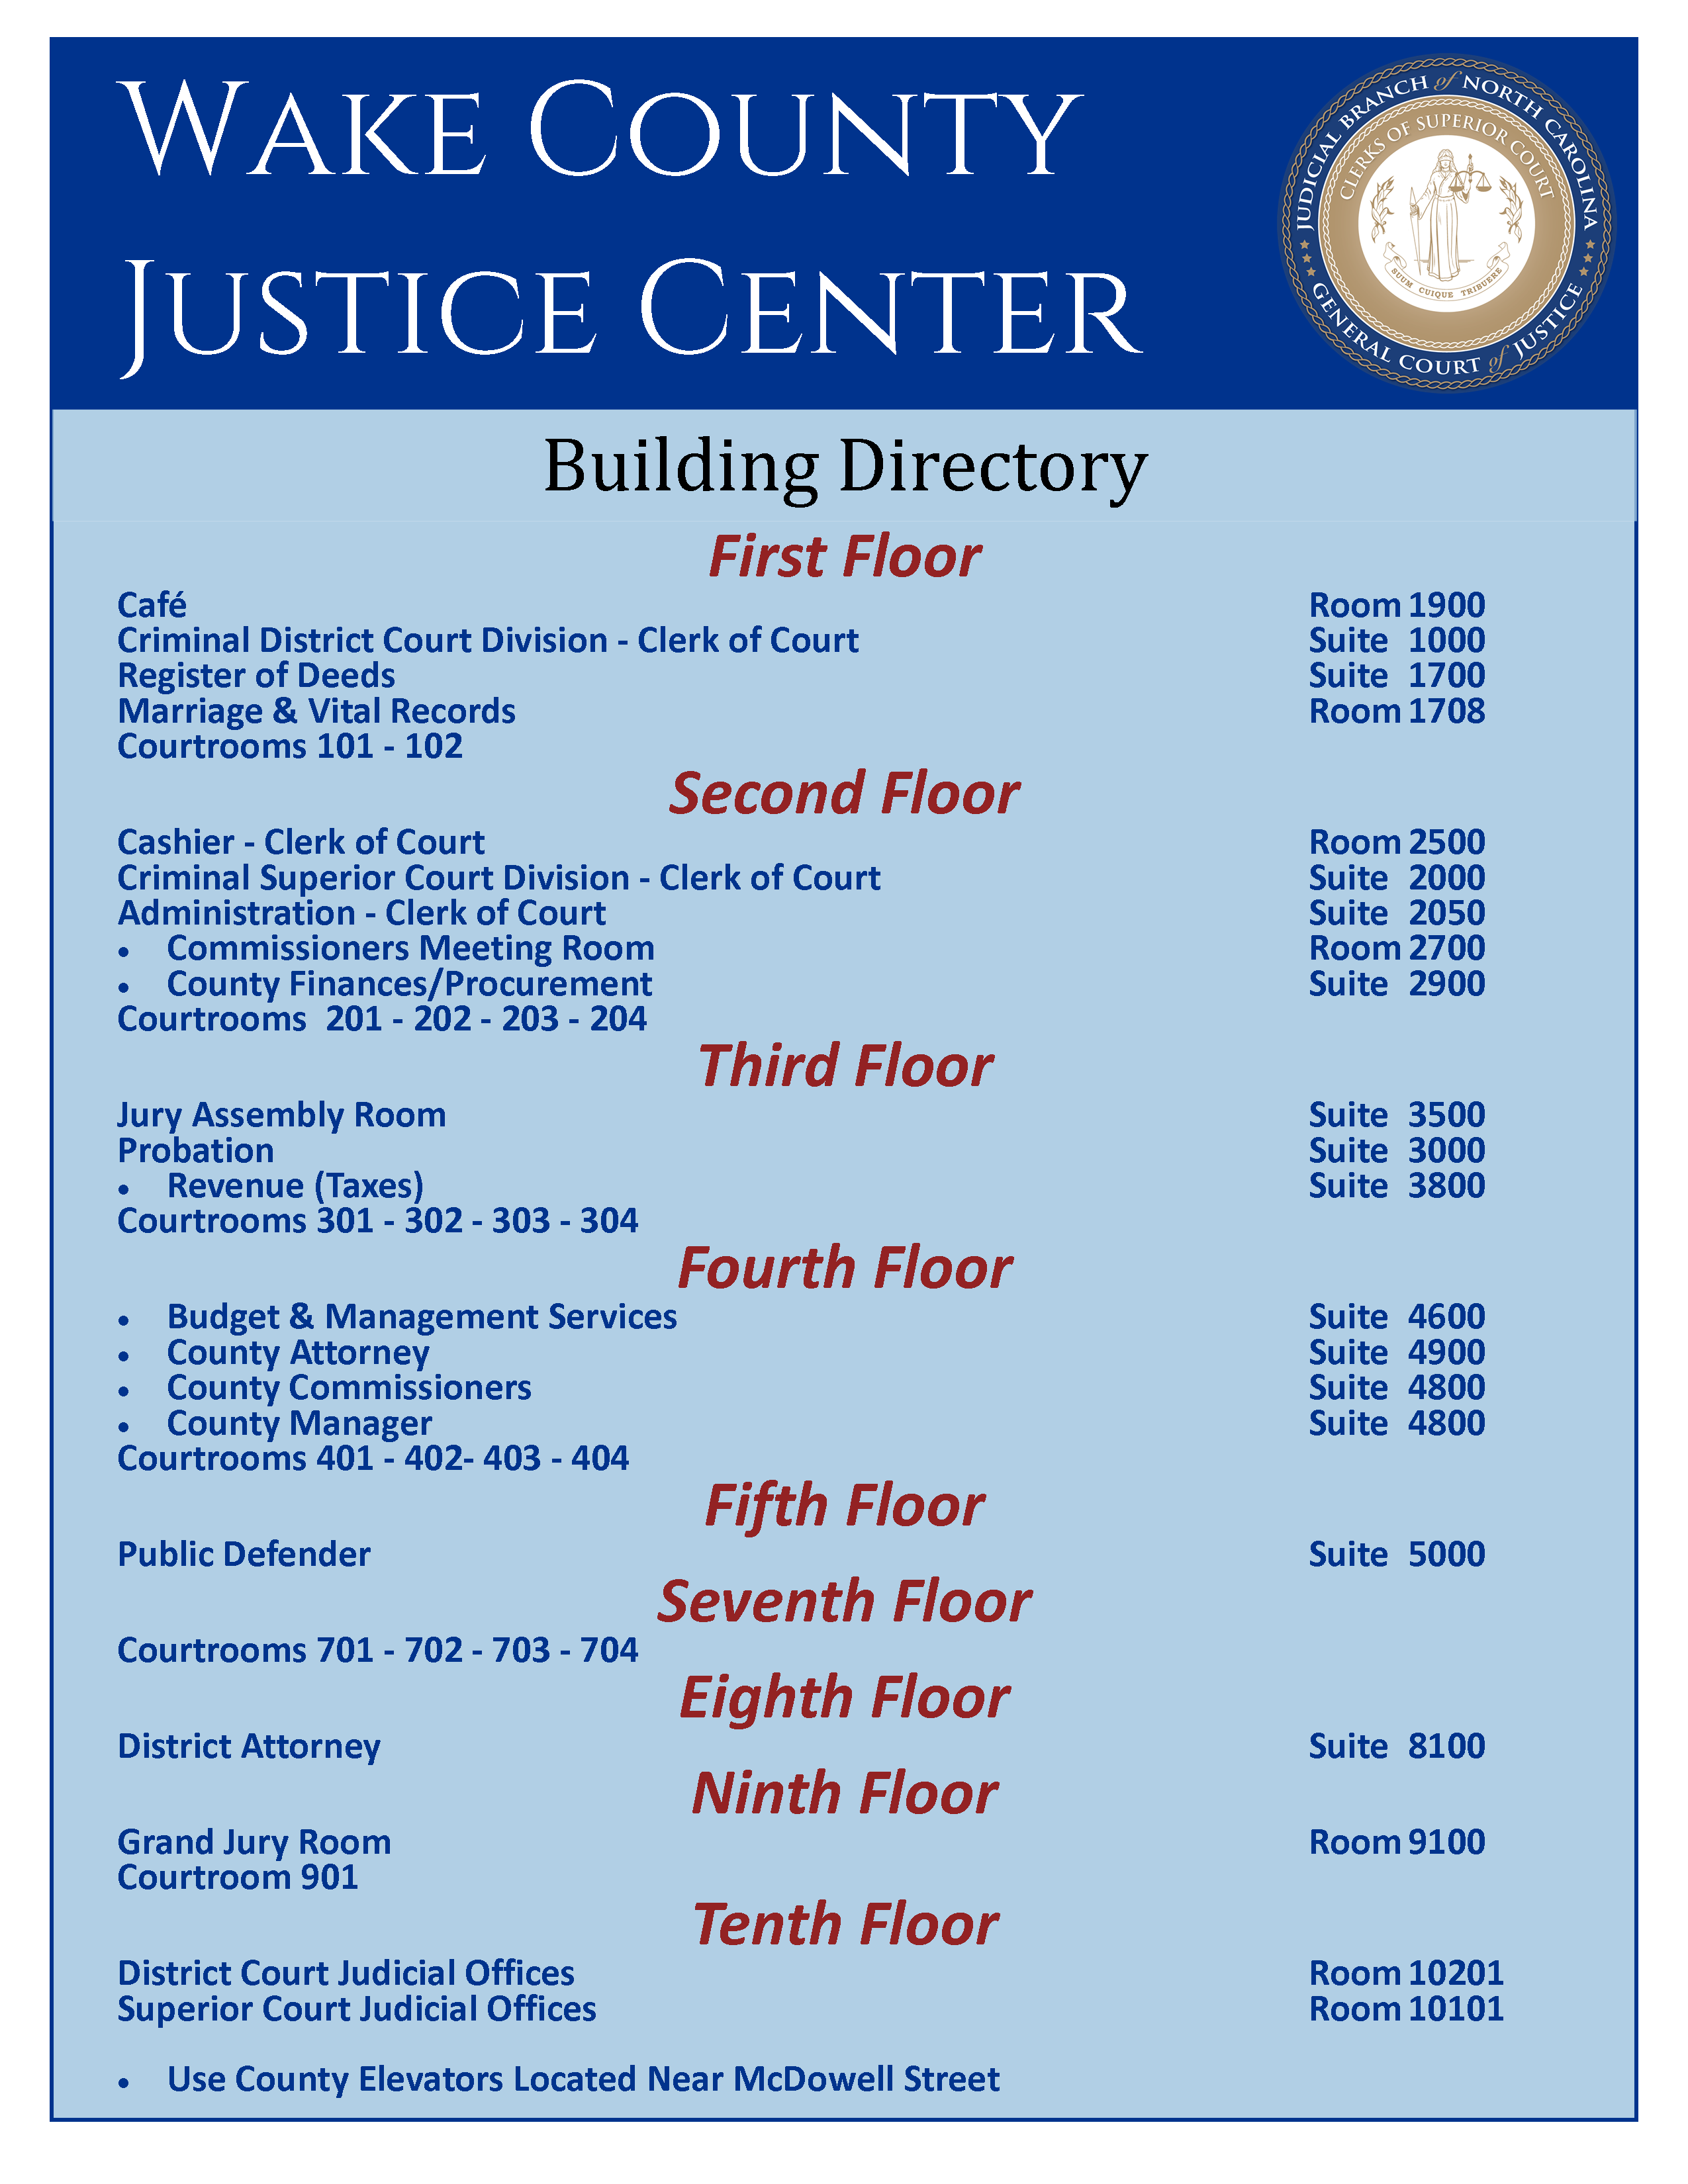 Wake County Justice Center Building Directory